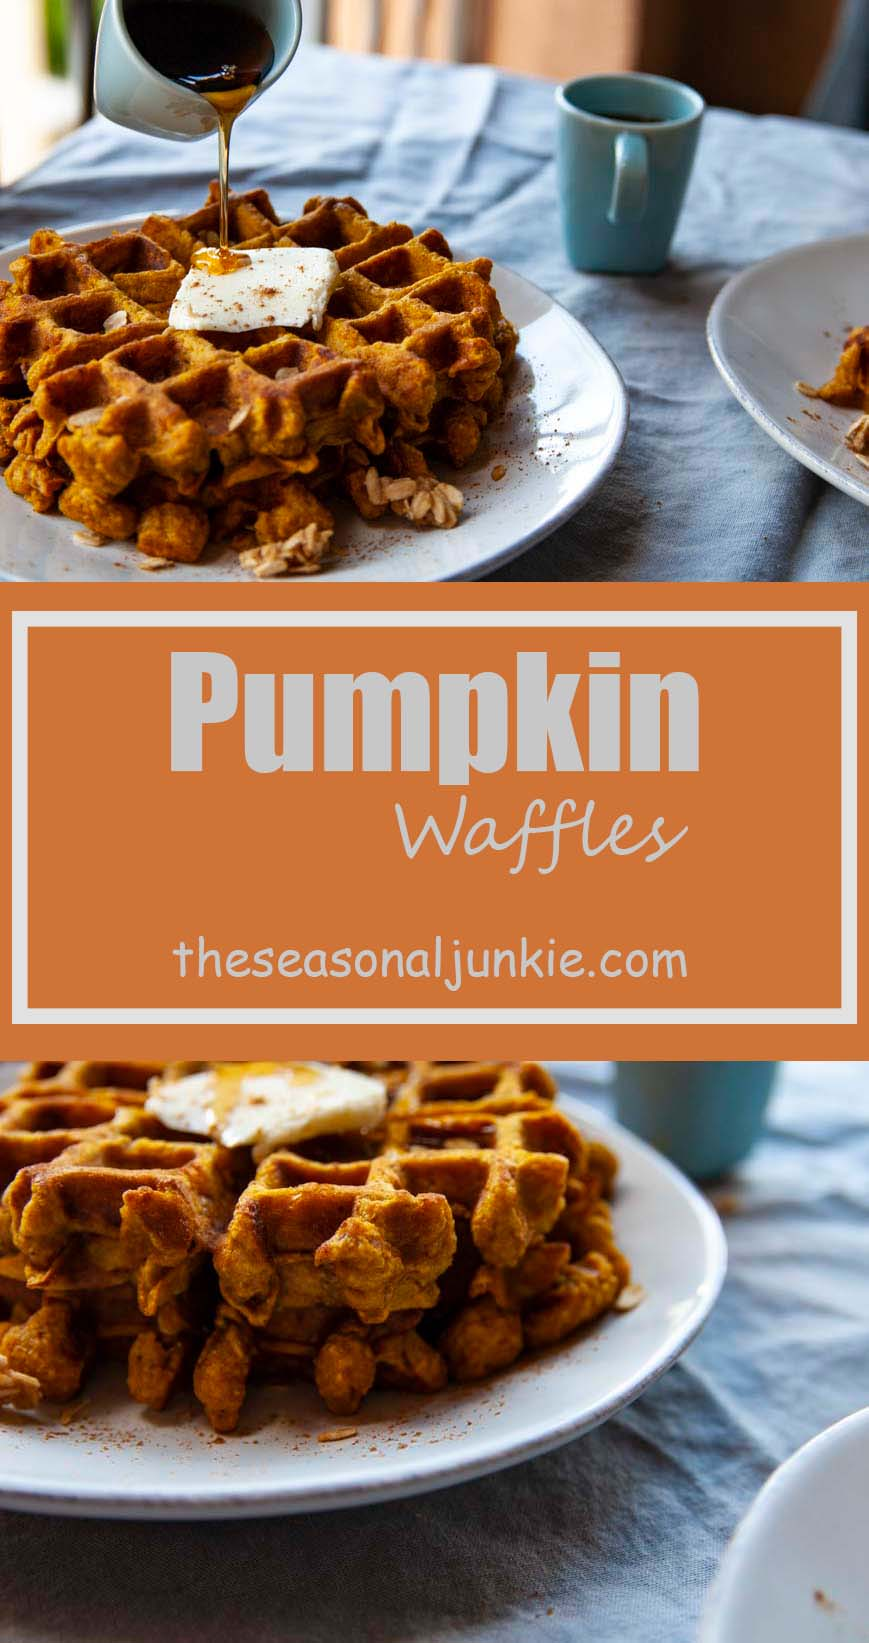 Pumpkin Waffles The Seasonal Junkie